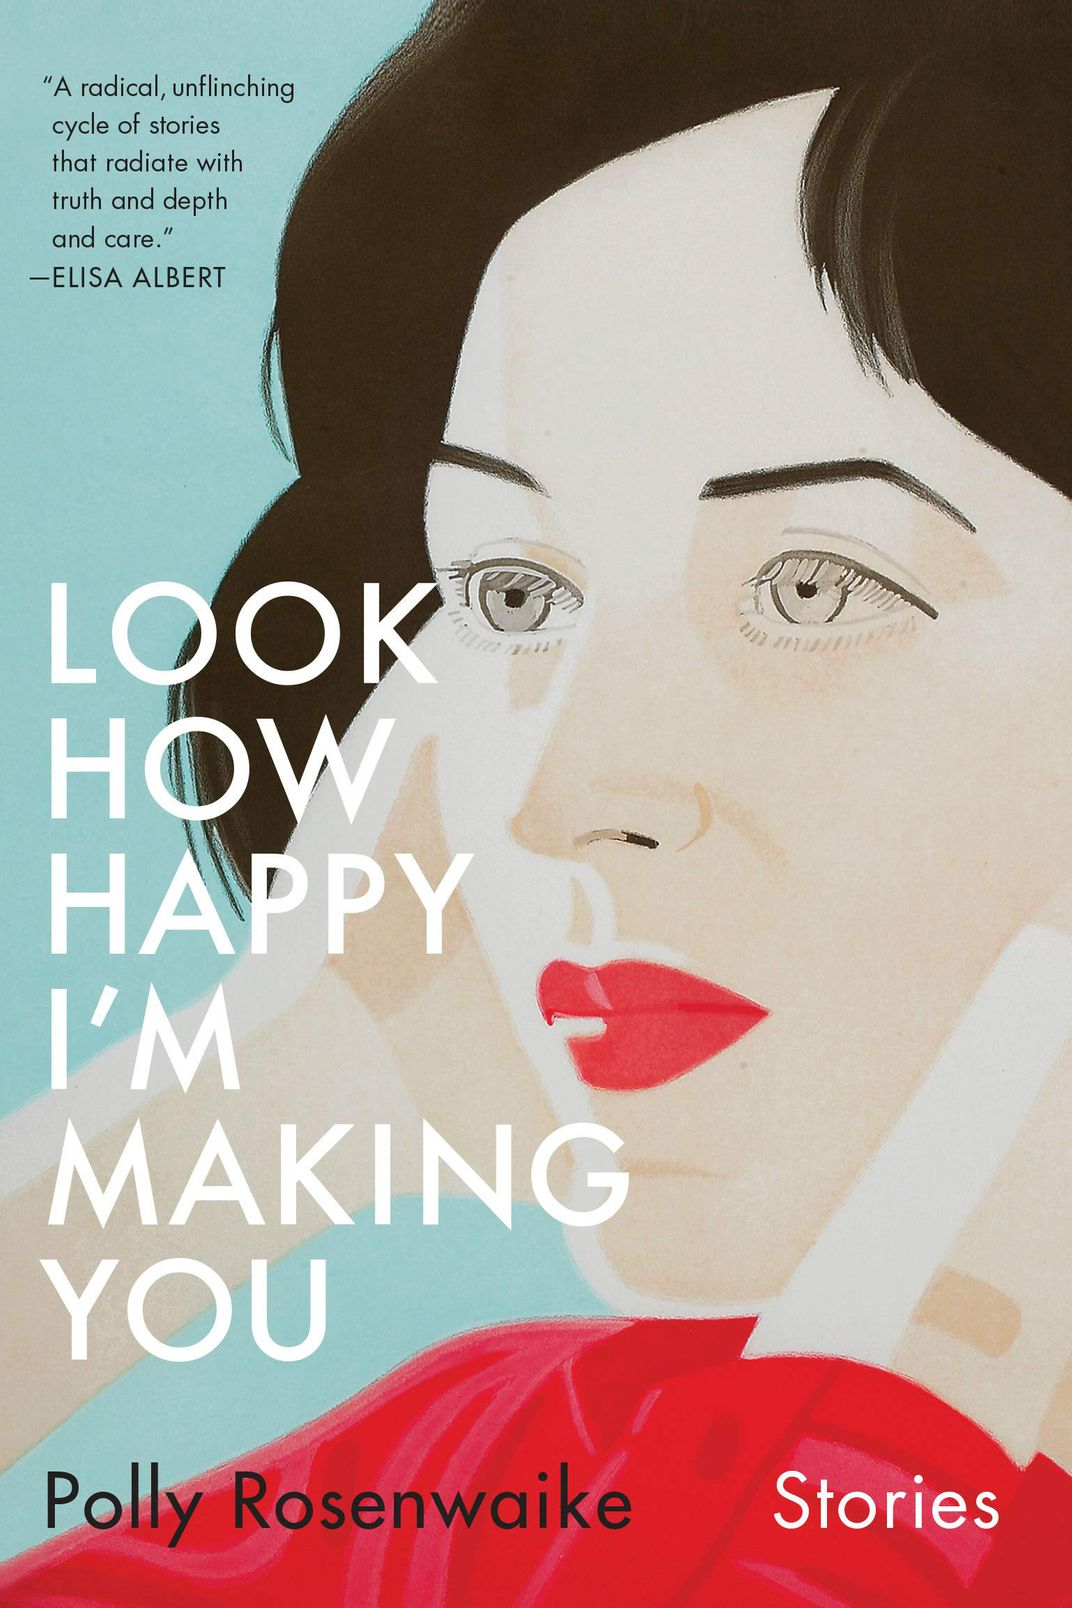 Look How Happy I'm Making You, by Polly Rosenwaike (Doubleday, March 19)